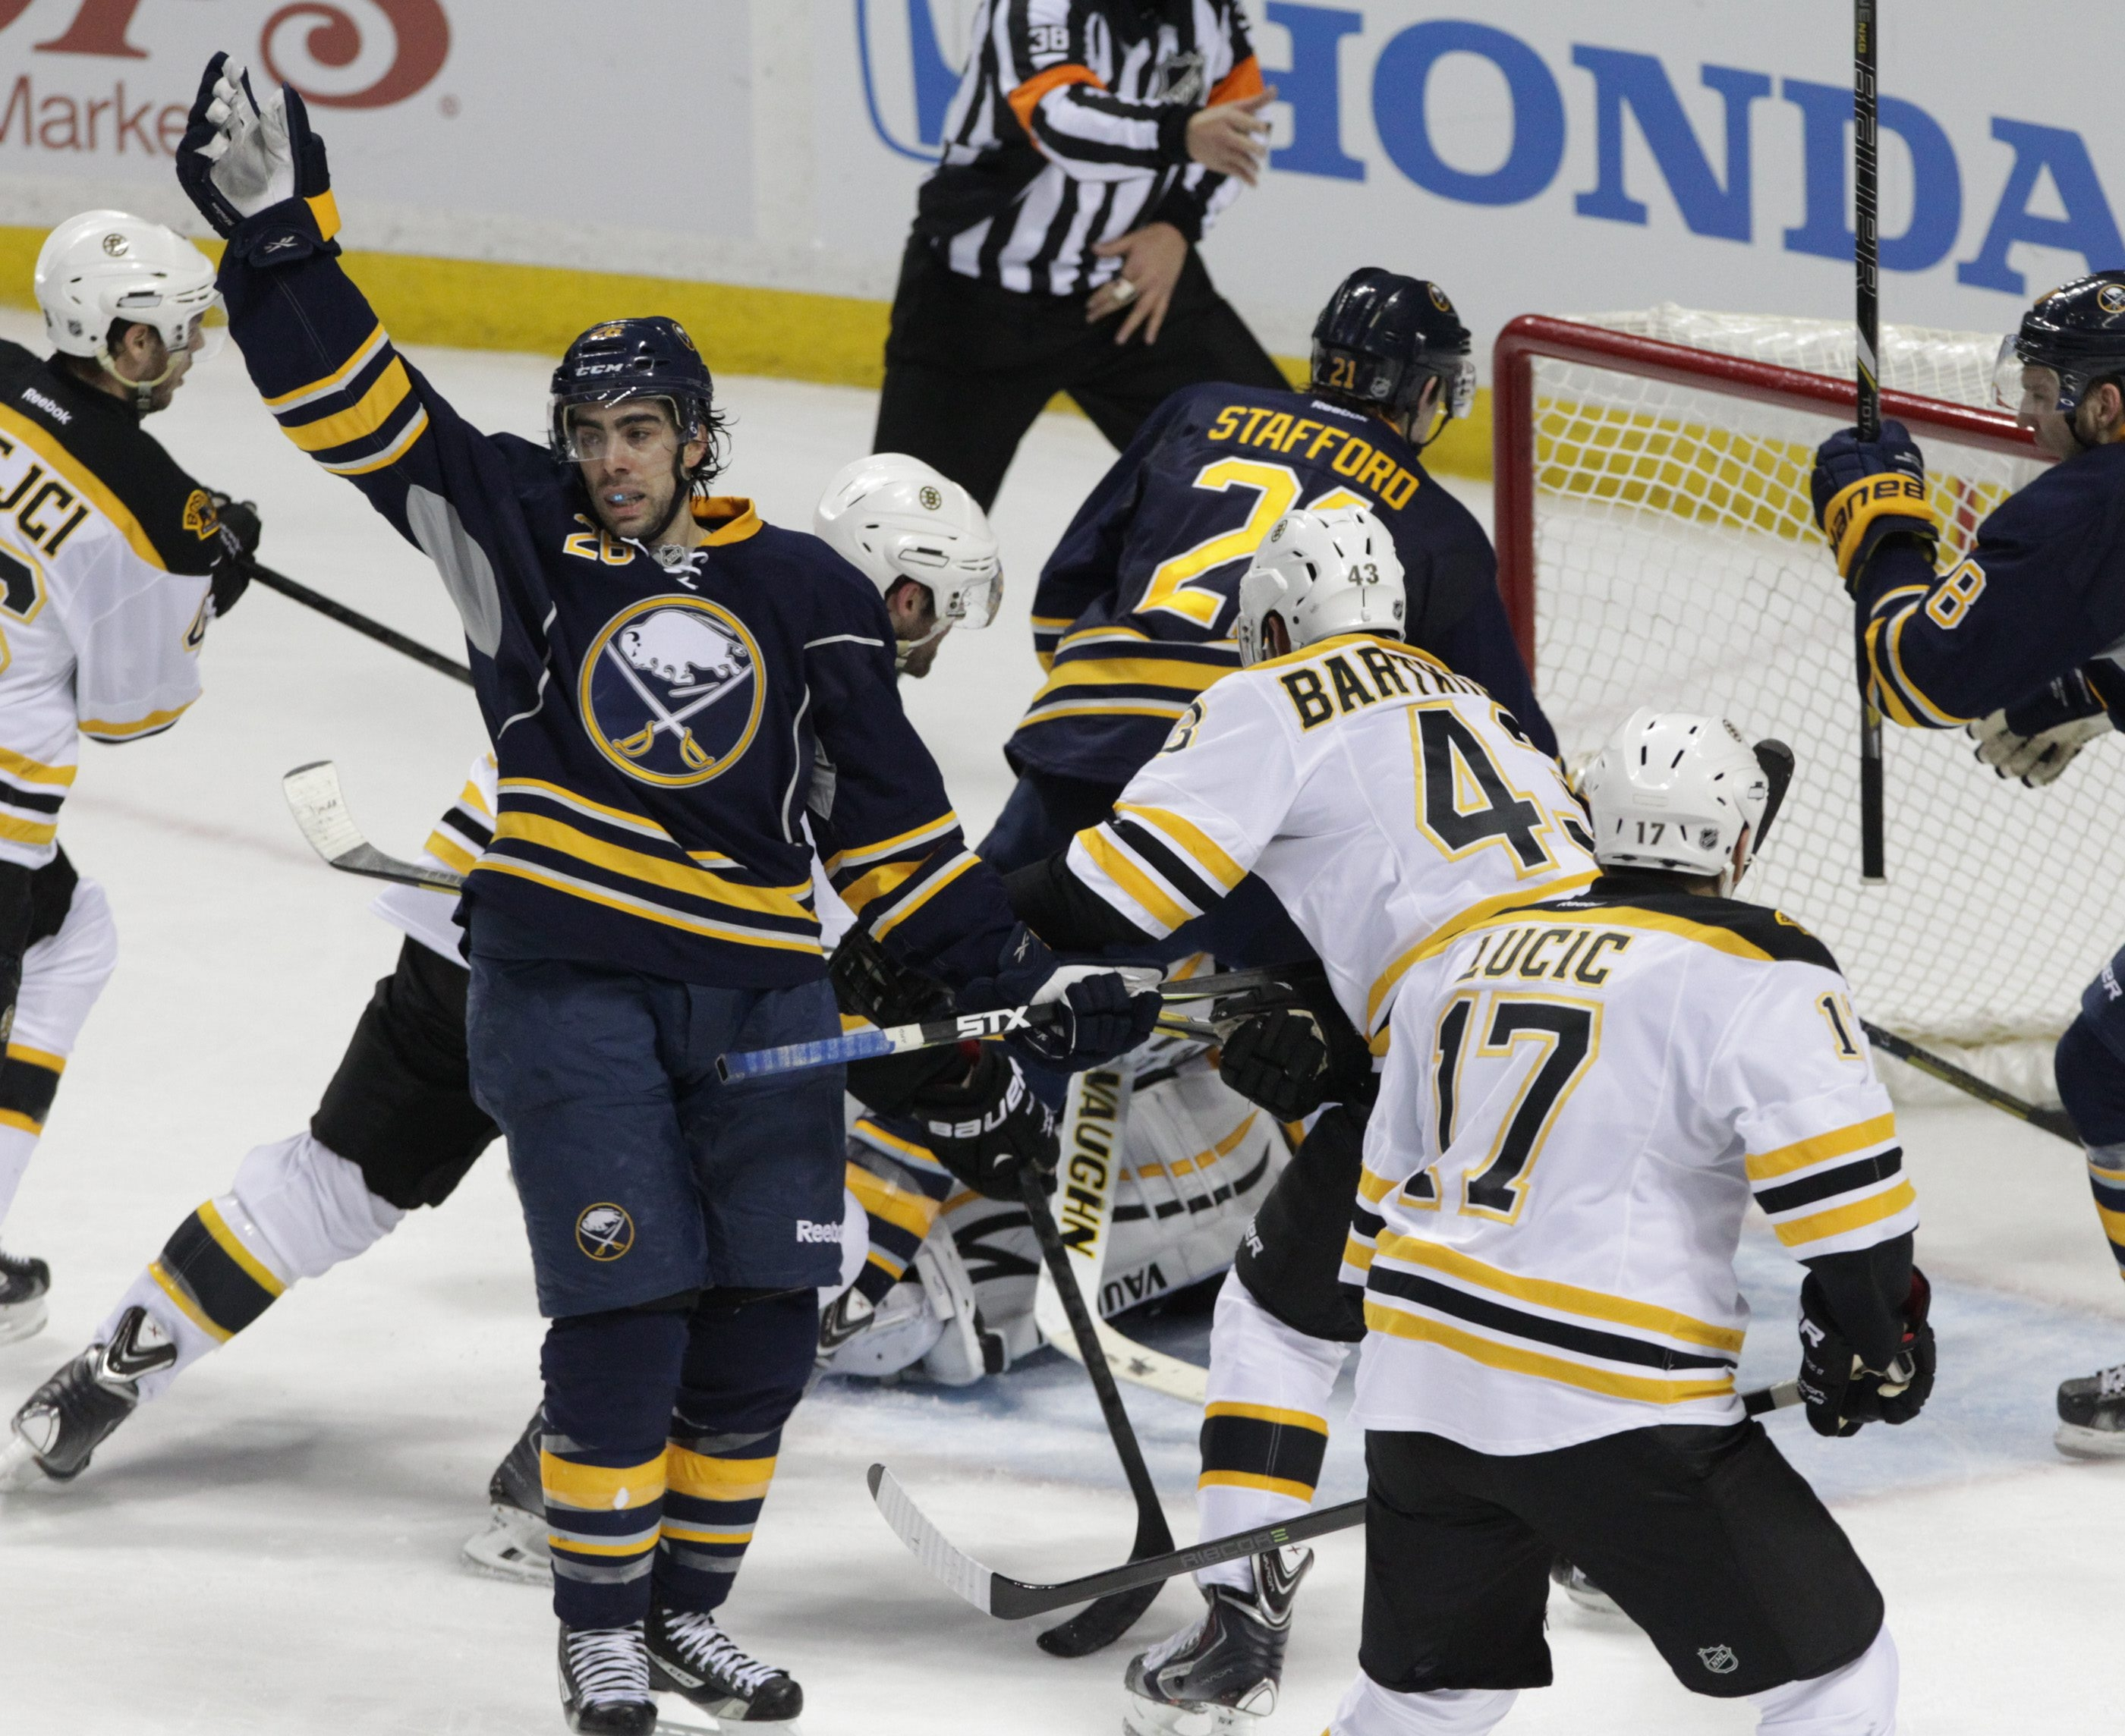 Matt Moulson, left, is a goal-scoring specialist who is no longer with the Sabres. He came in a trade and left in a trade.